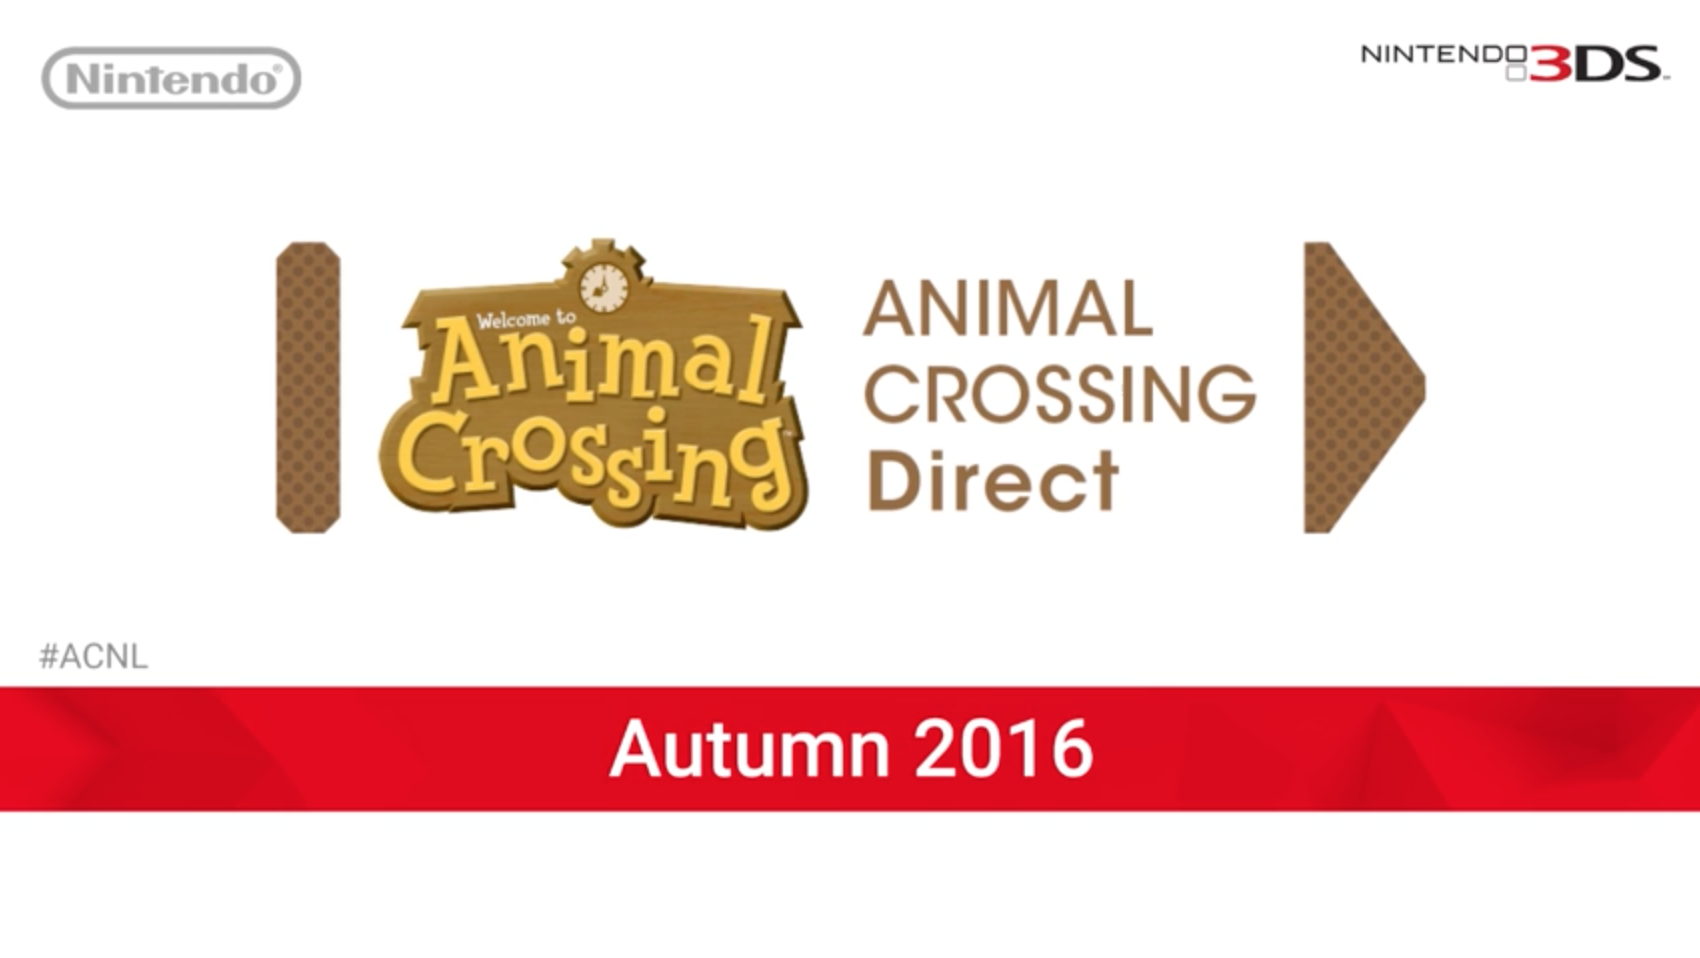 Animal Crossing Mini Direct Announced for November 2016